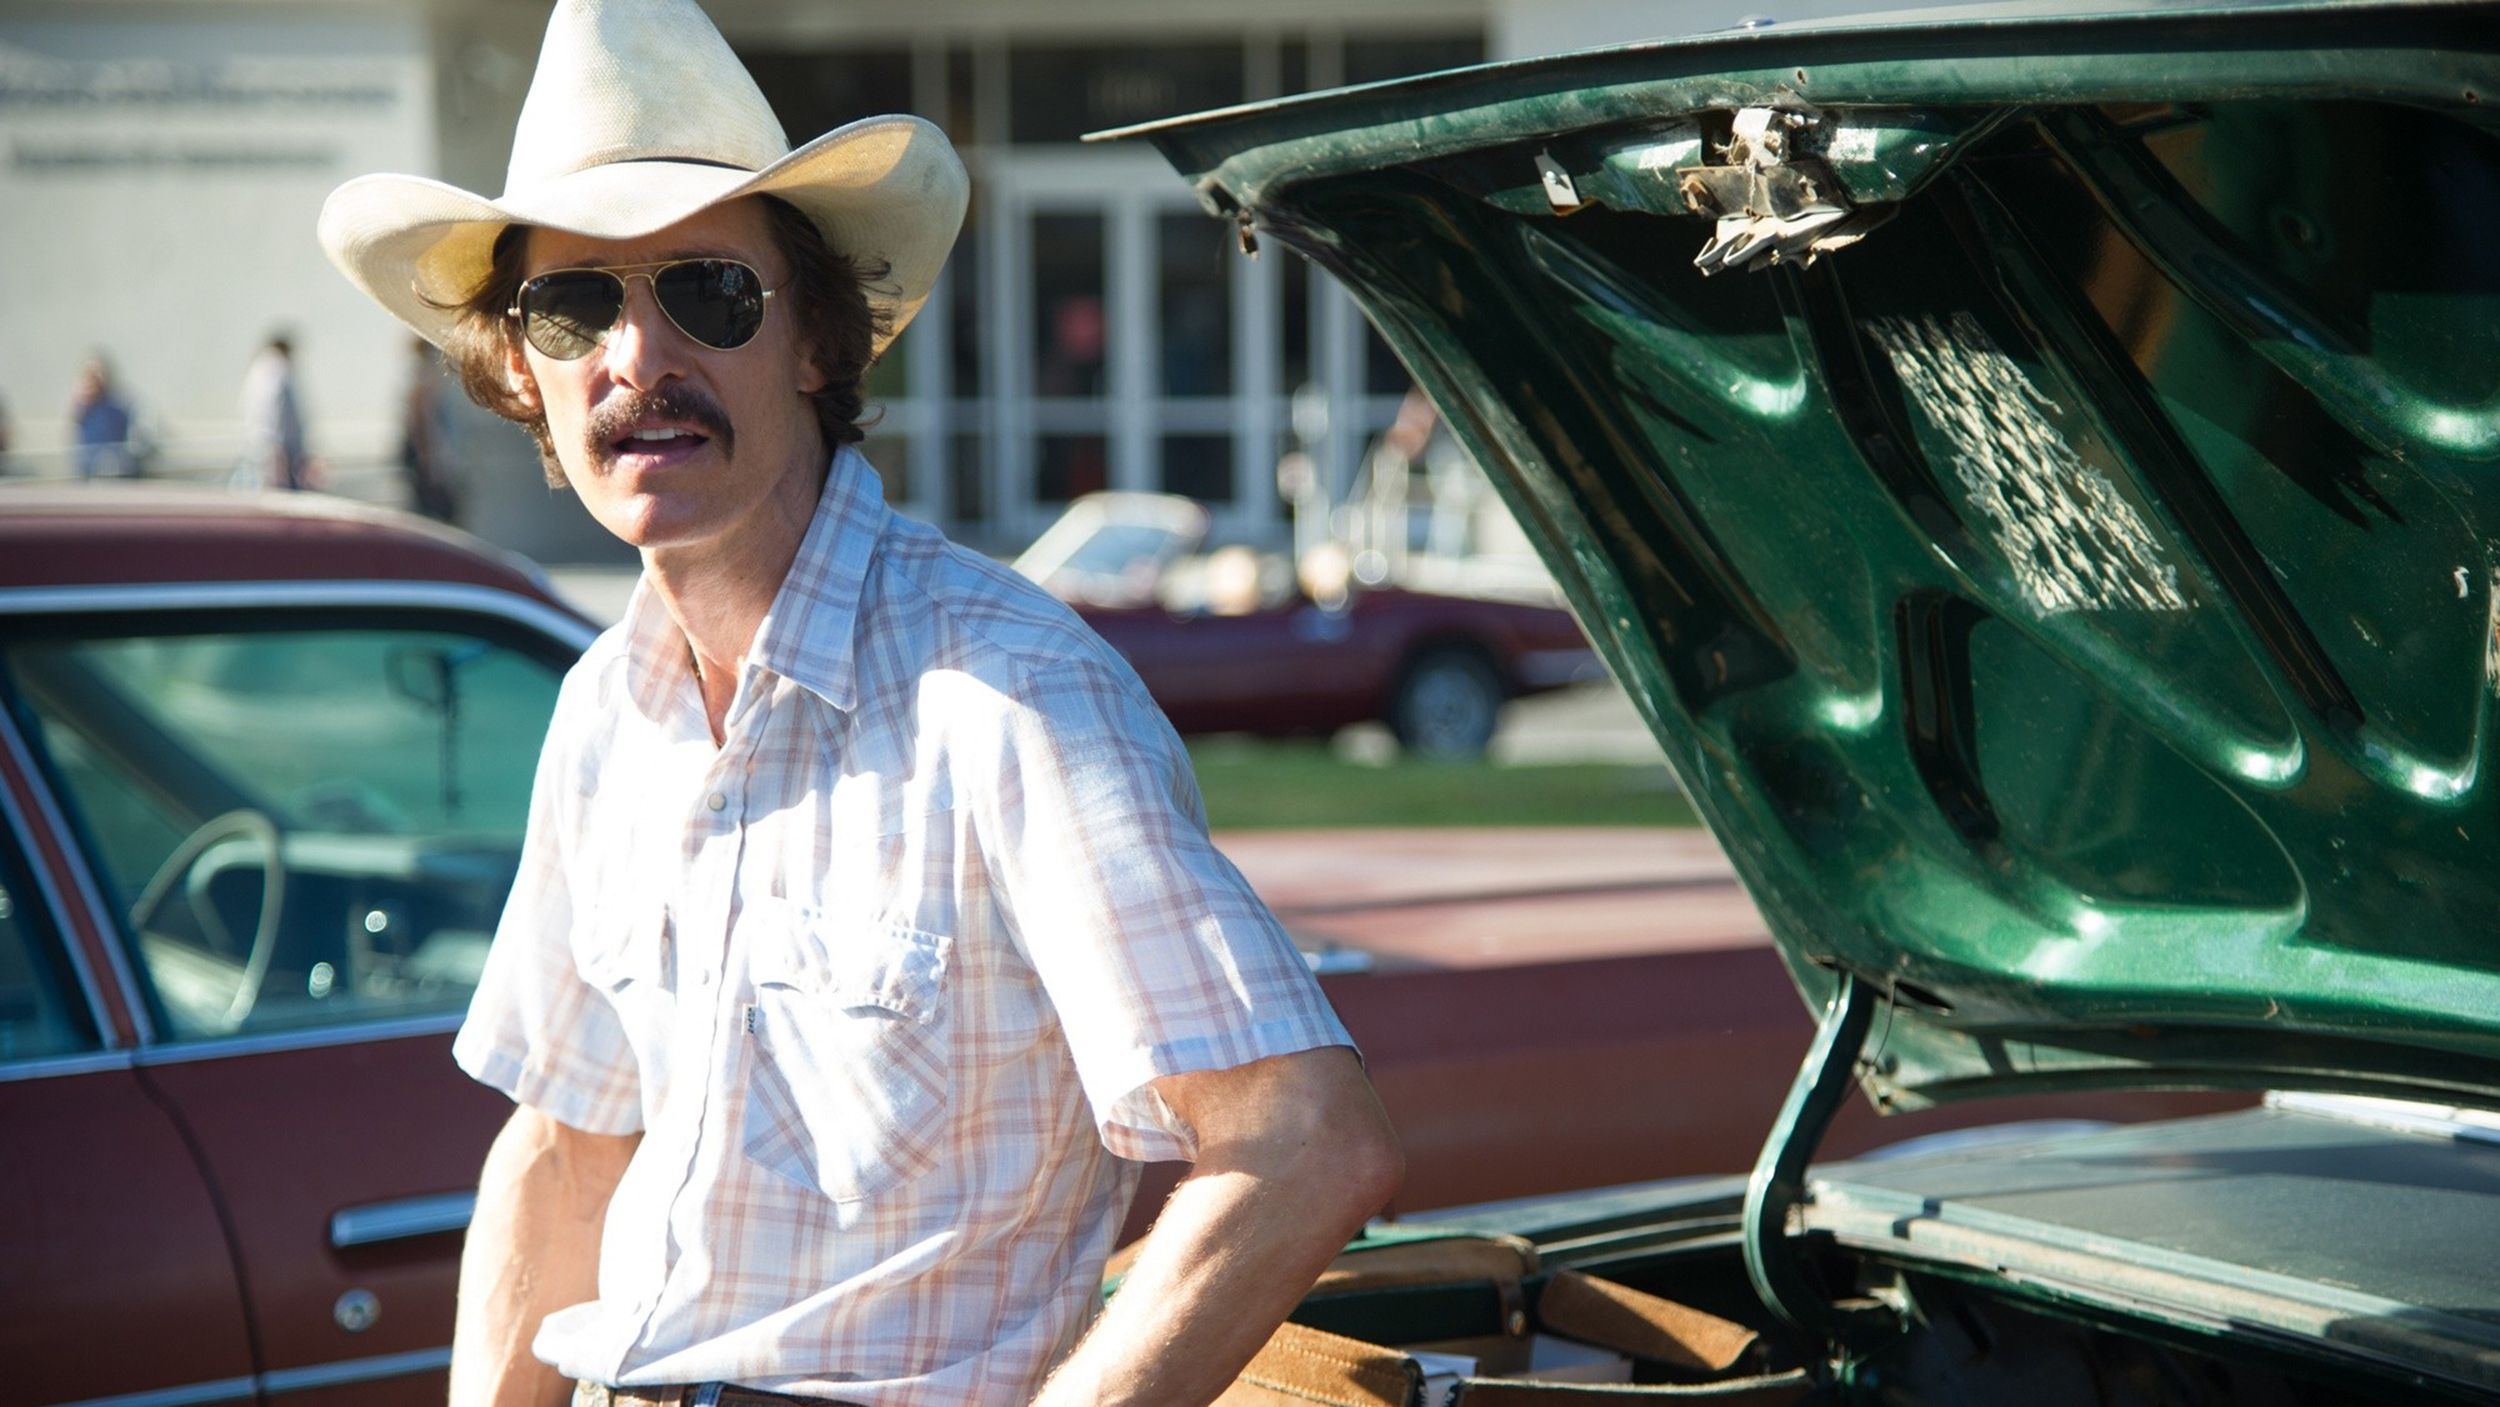 Can DiCaprio beat McConaughey? Fearless Oscar predictions give awards an edge